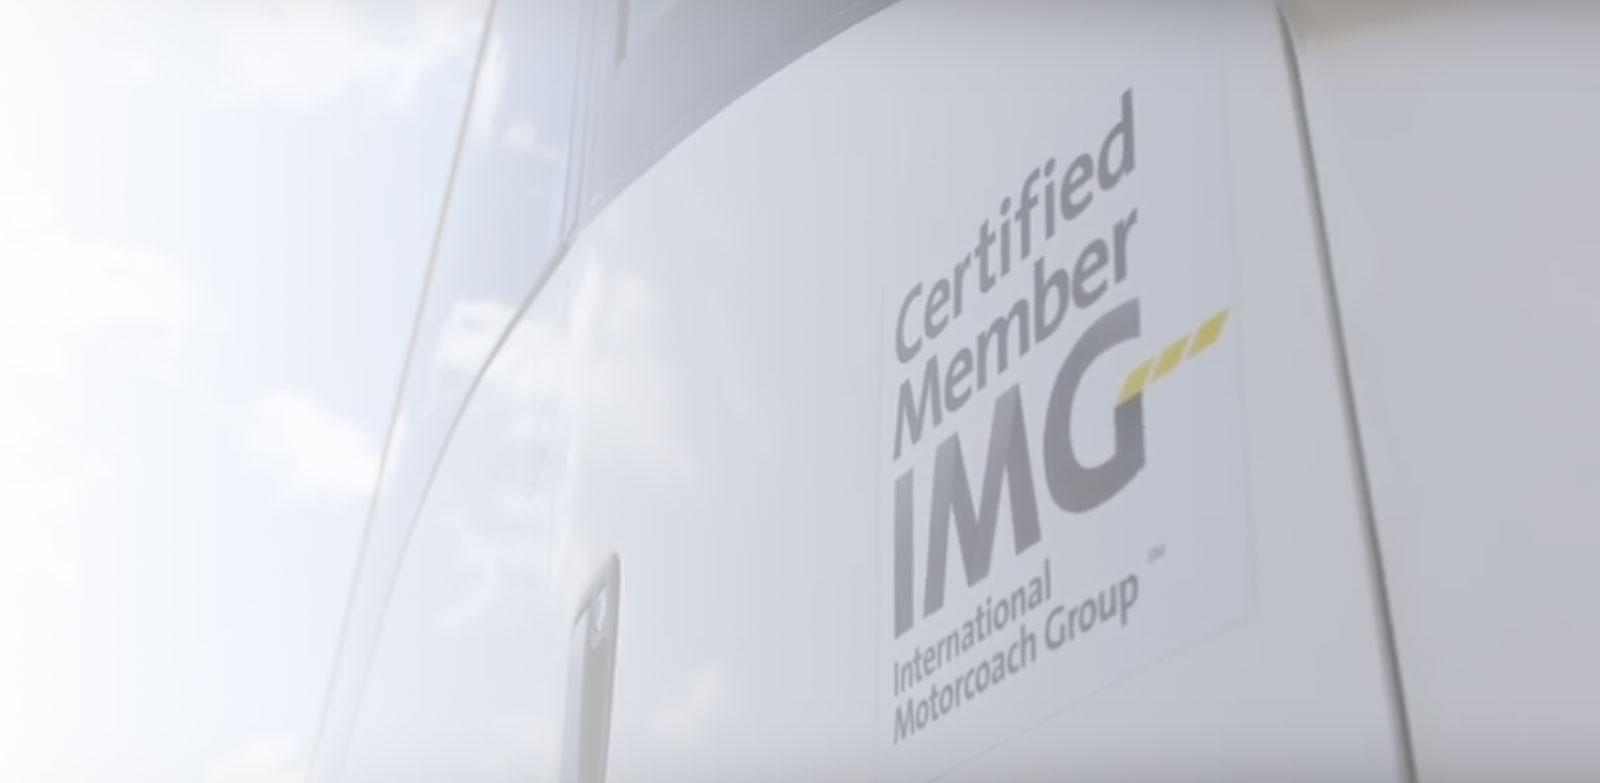 Hire a Certified Motorcoach